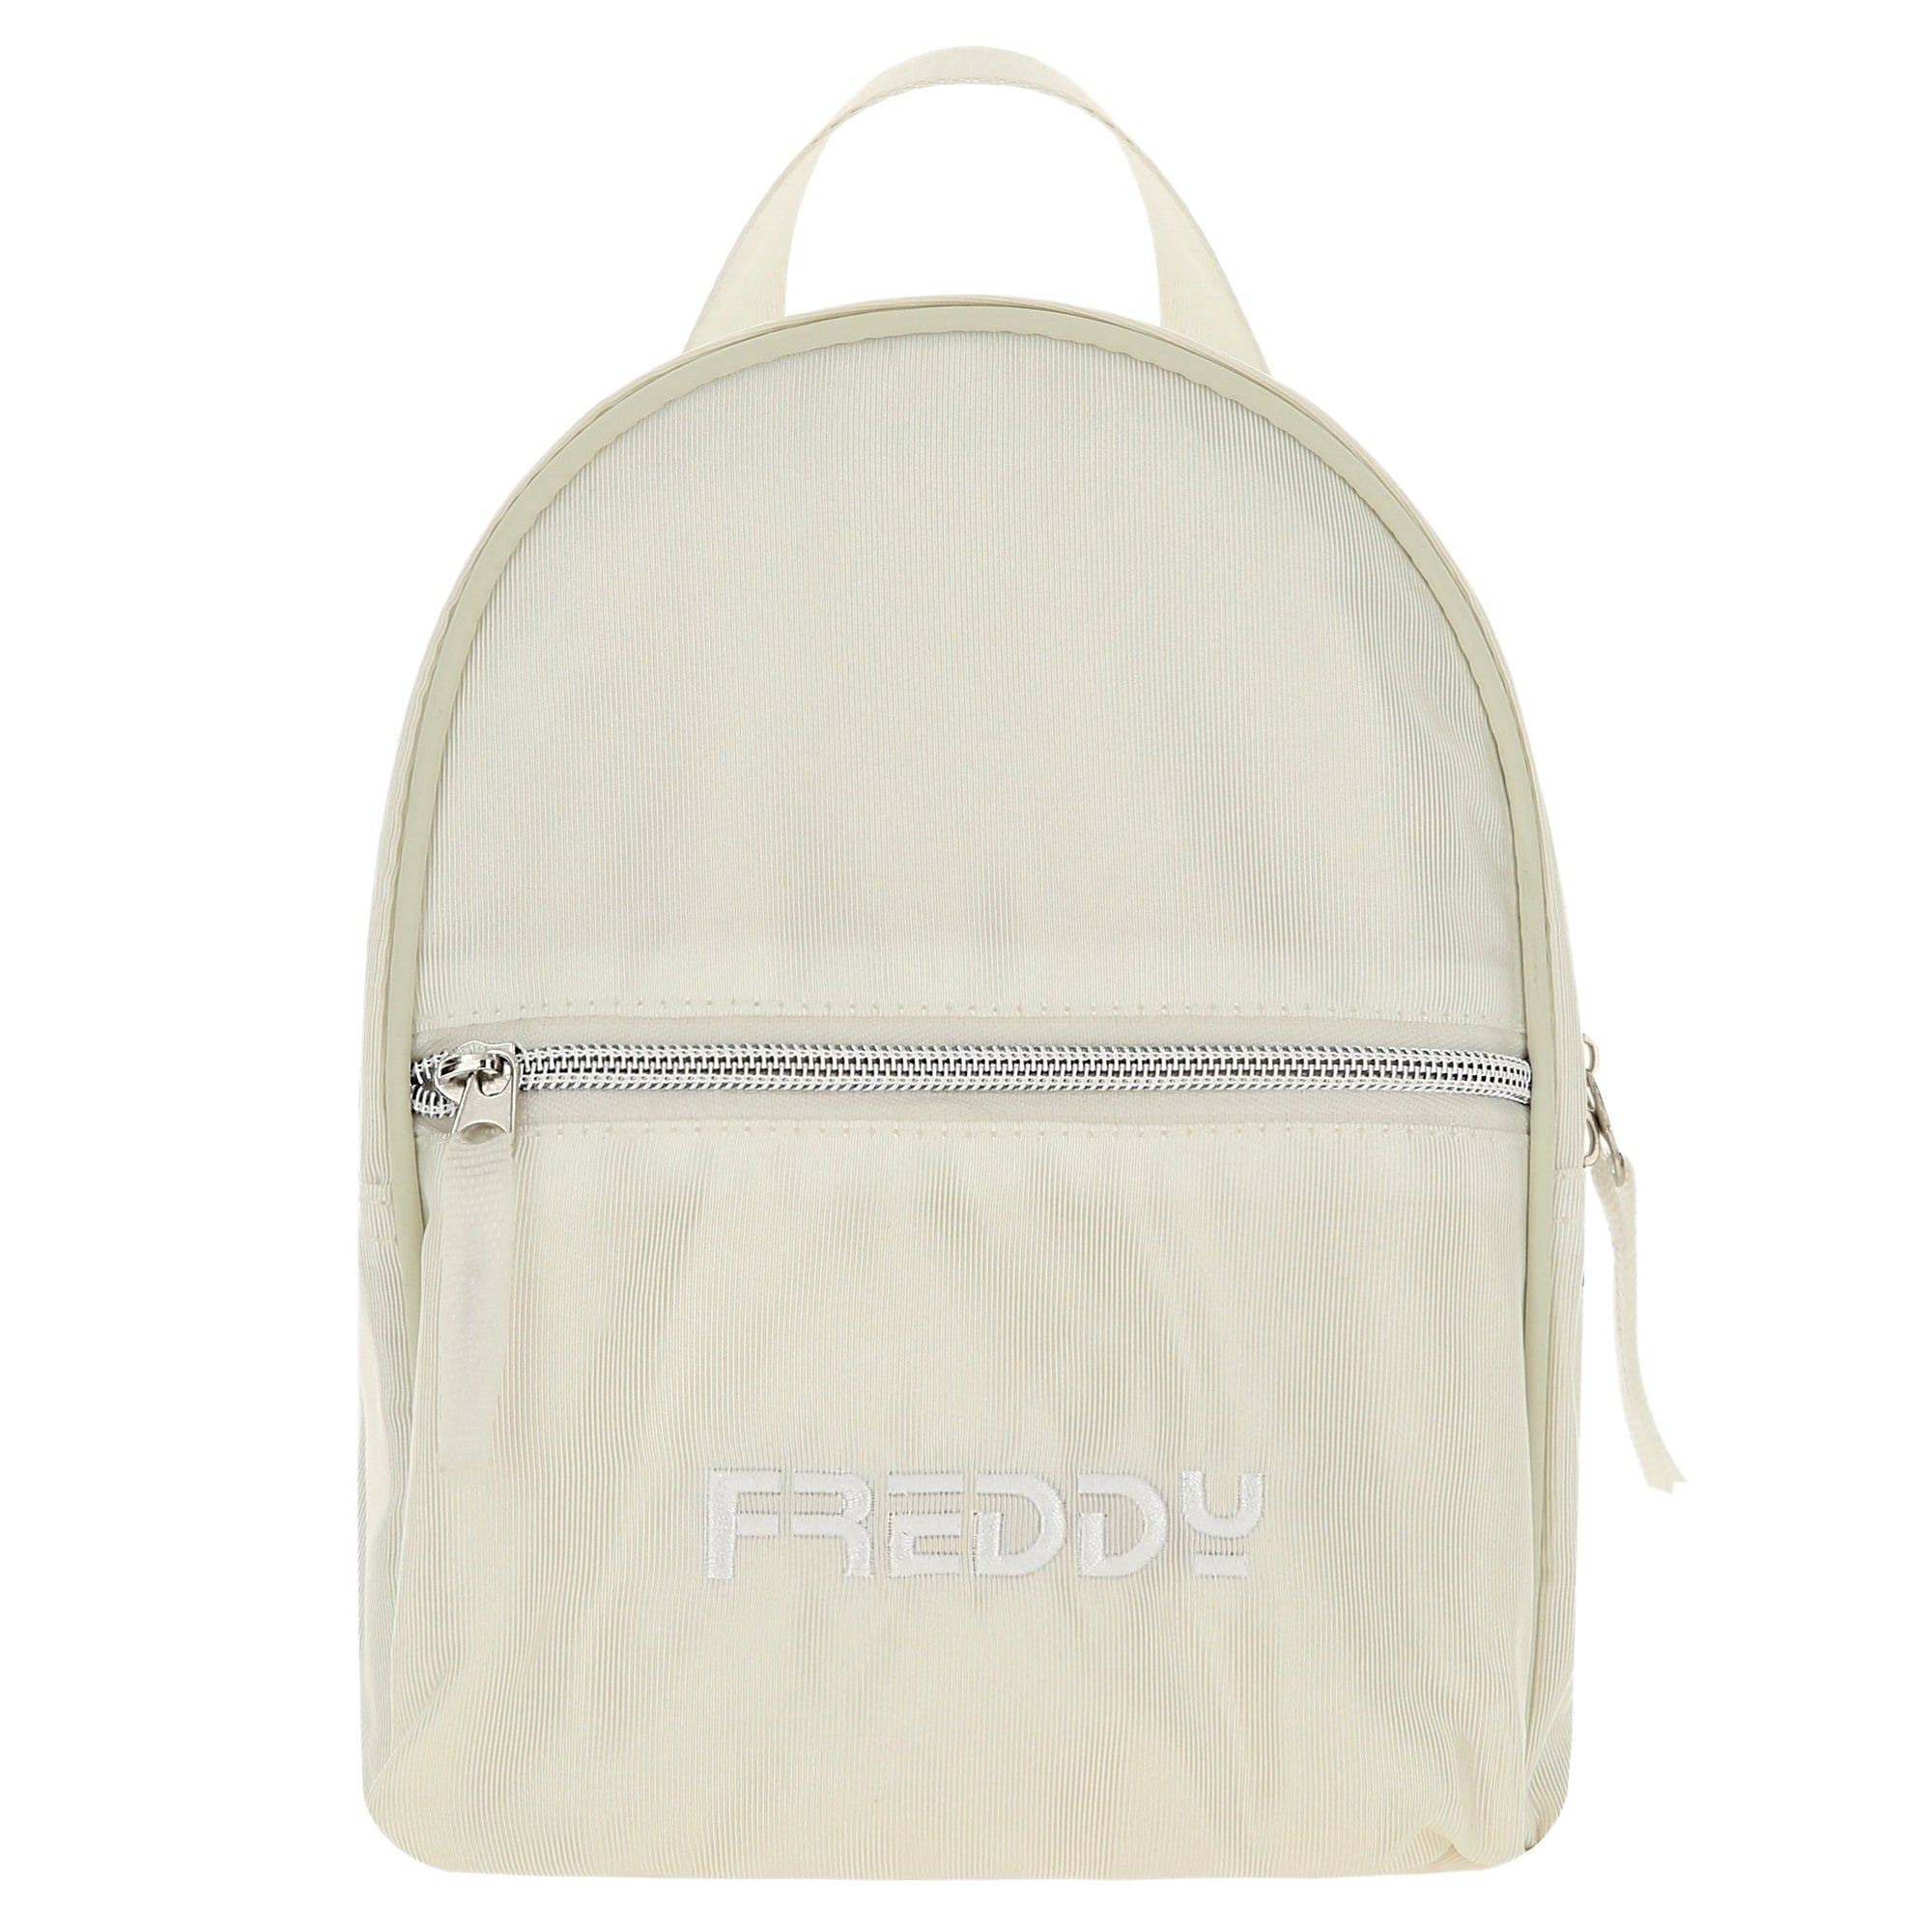 Backpack - Logo Stitch Detail - White